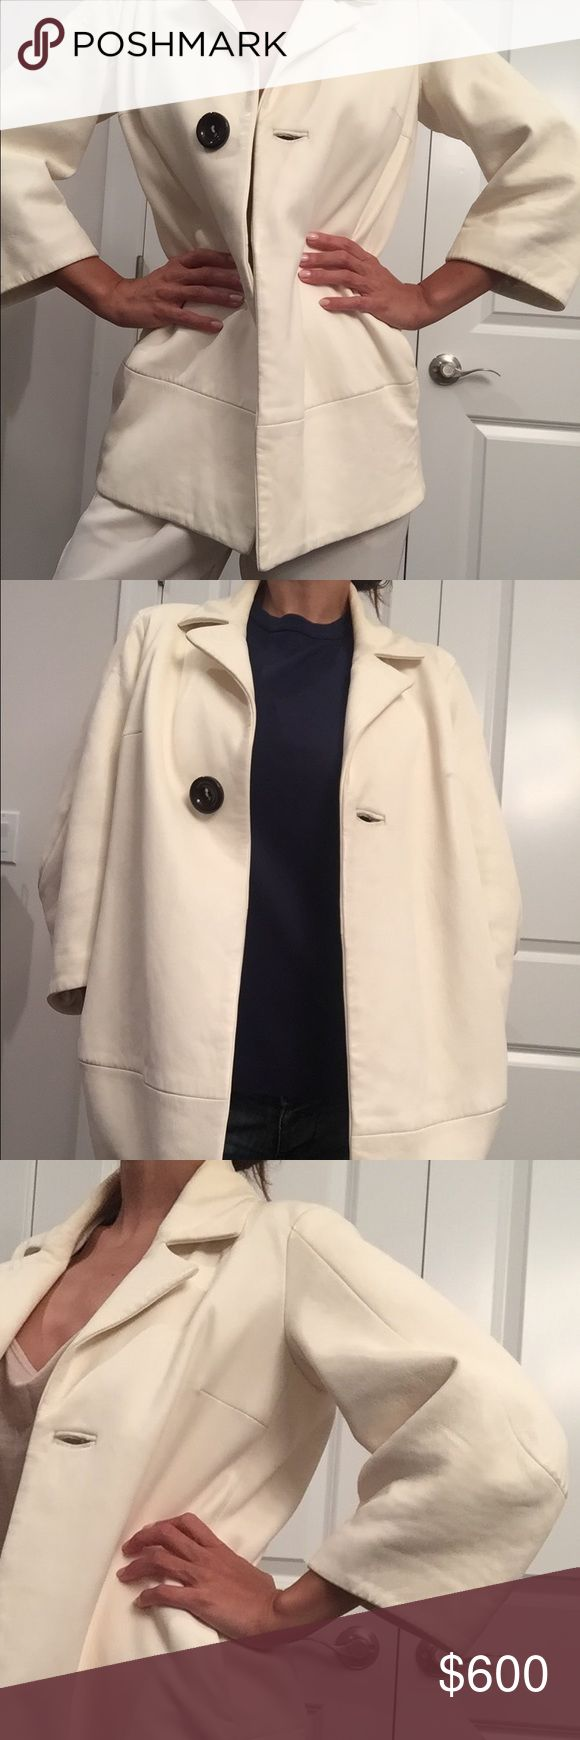 Off White Dsquared jacket 100% Lamb Leather, Size XS-S (for an oversized look) and M as a fitted coat, Three-quarters sleeves, one button at front, two big pockets. Condition: New without tags. Cool design, perfect for spring, summer evenings and autumn. DSQUARED Jackets & Coats Blazers